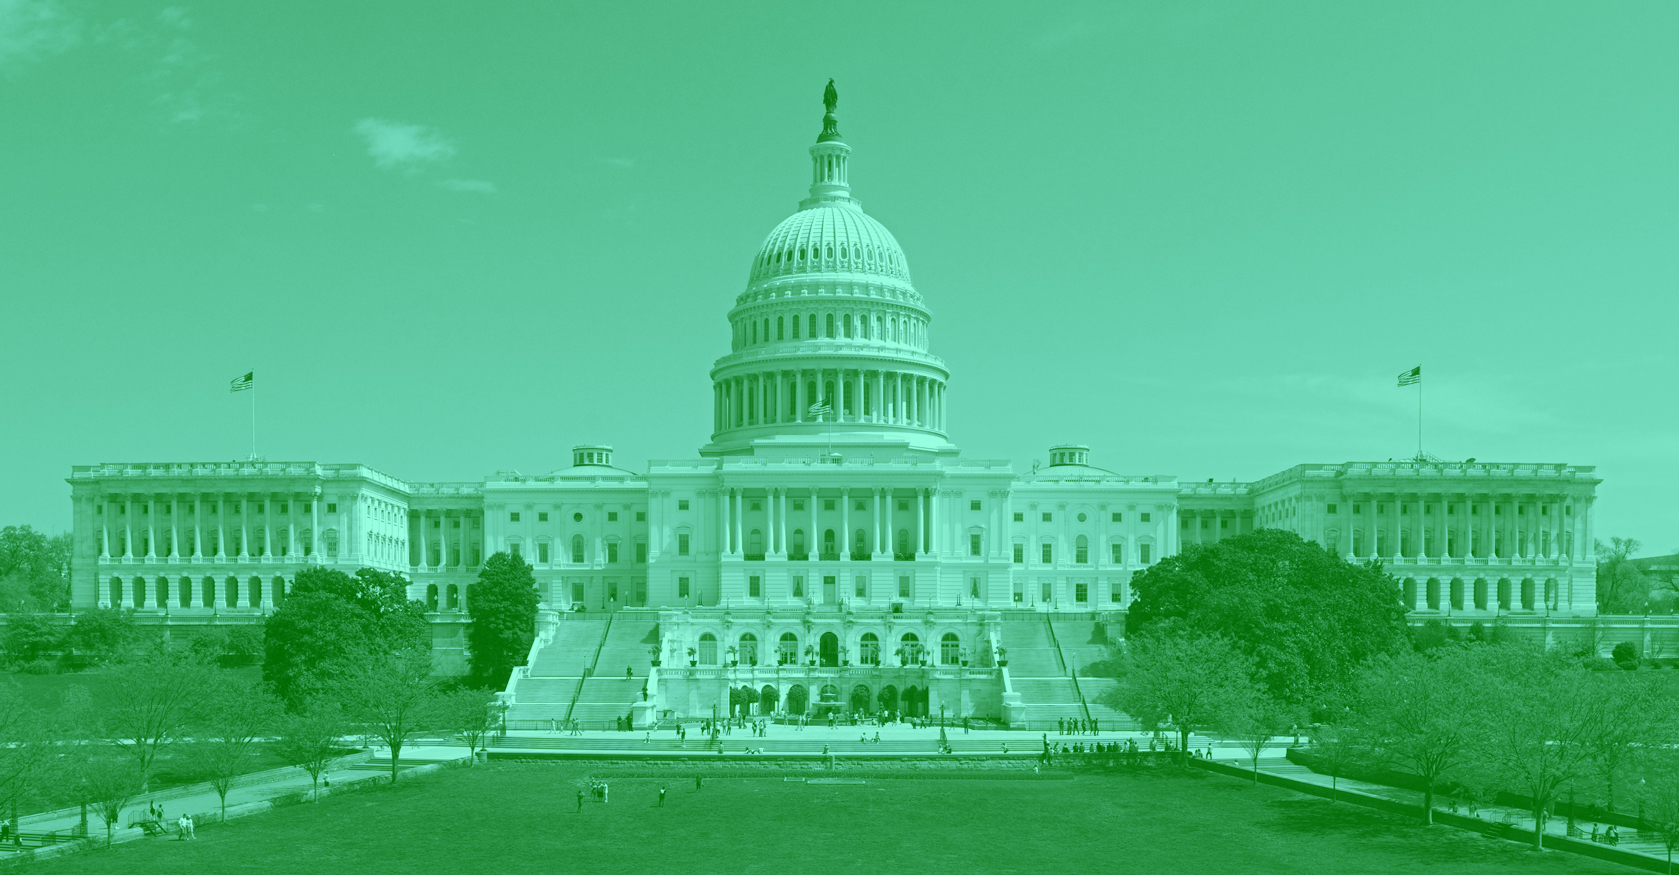 US-CAPITOL-GREEN-2.jpg